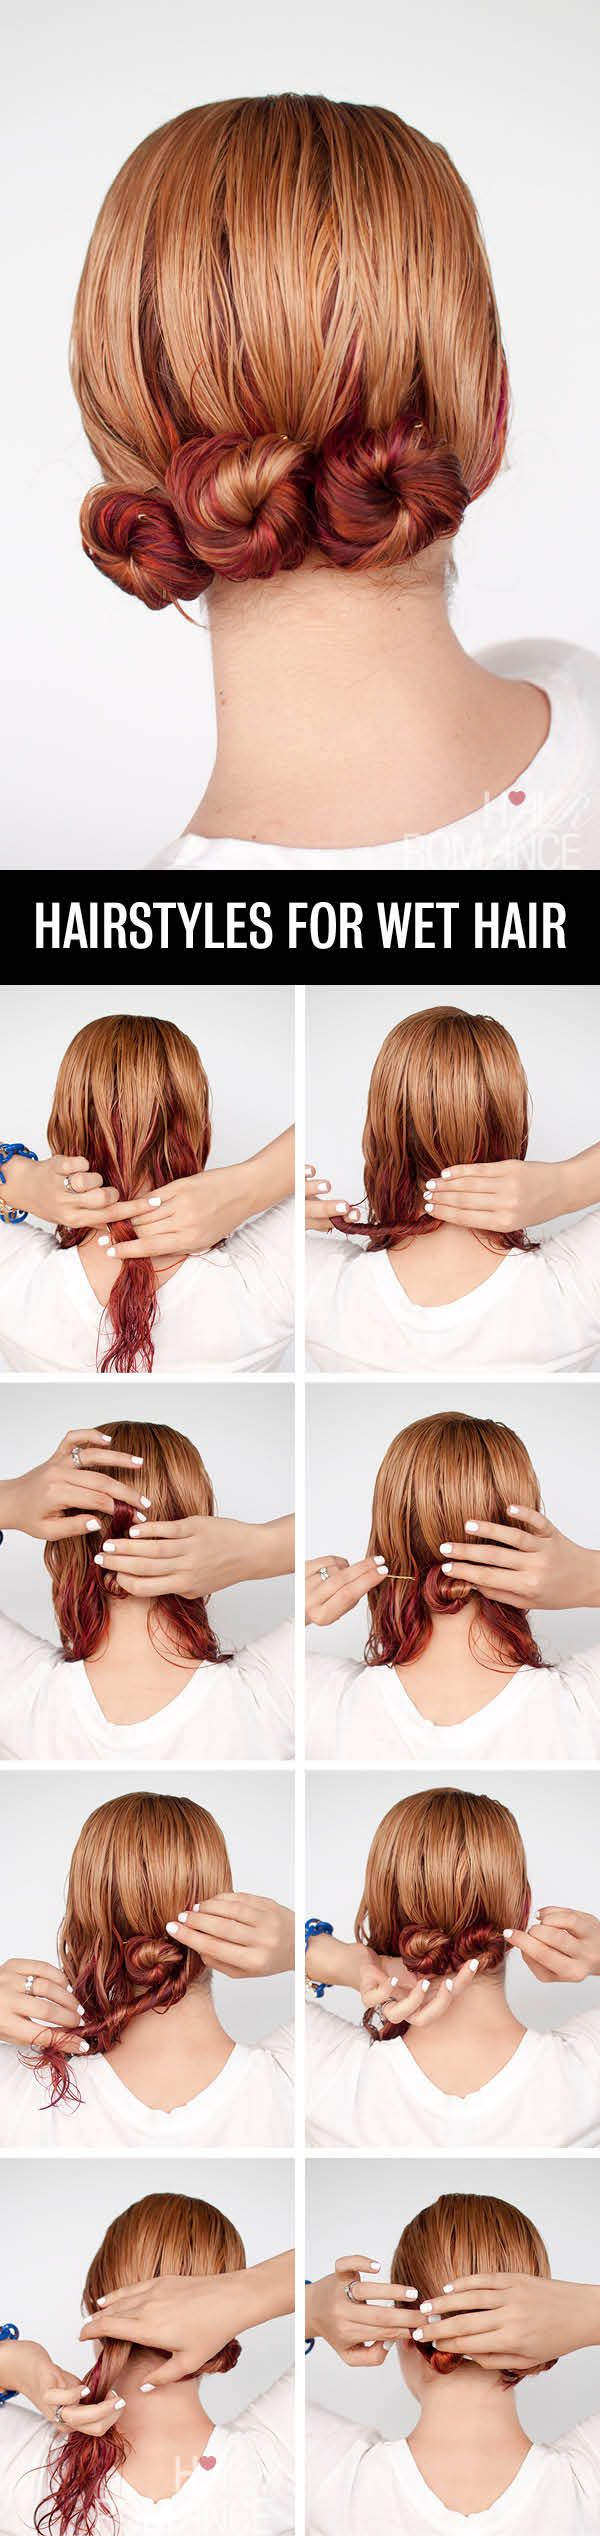 Easy hairstyles for wet hair